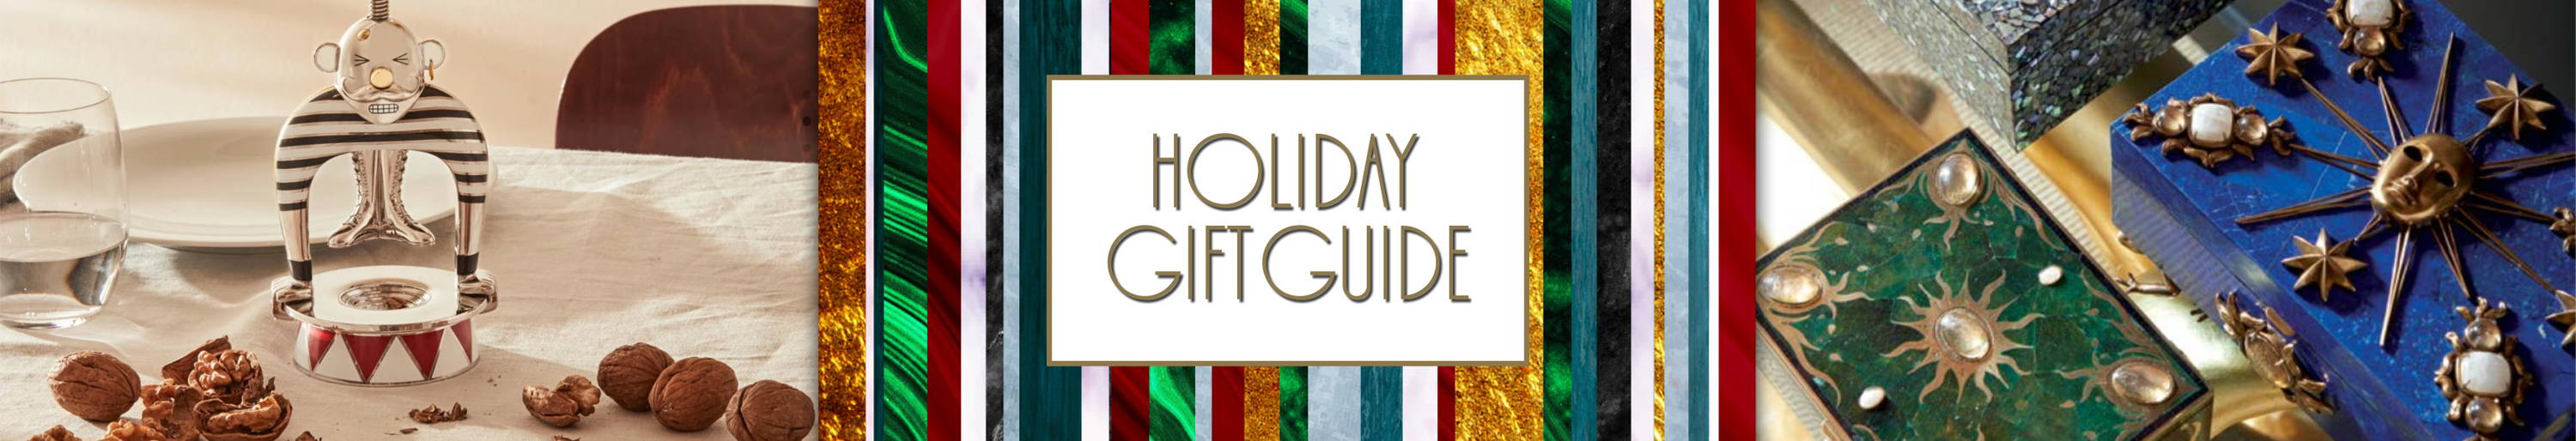 Holiday Guide